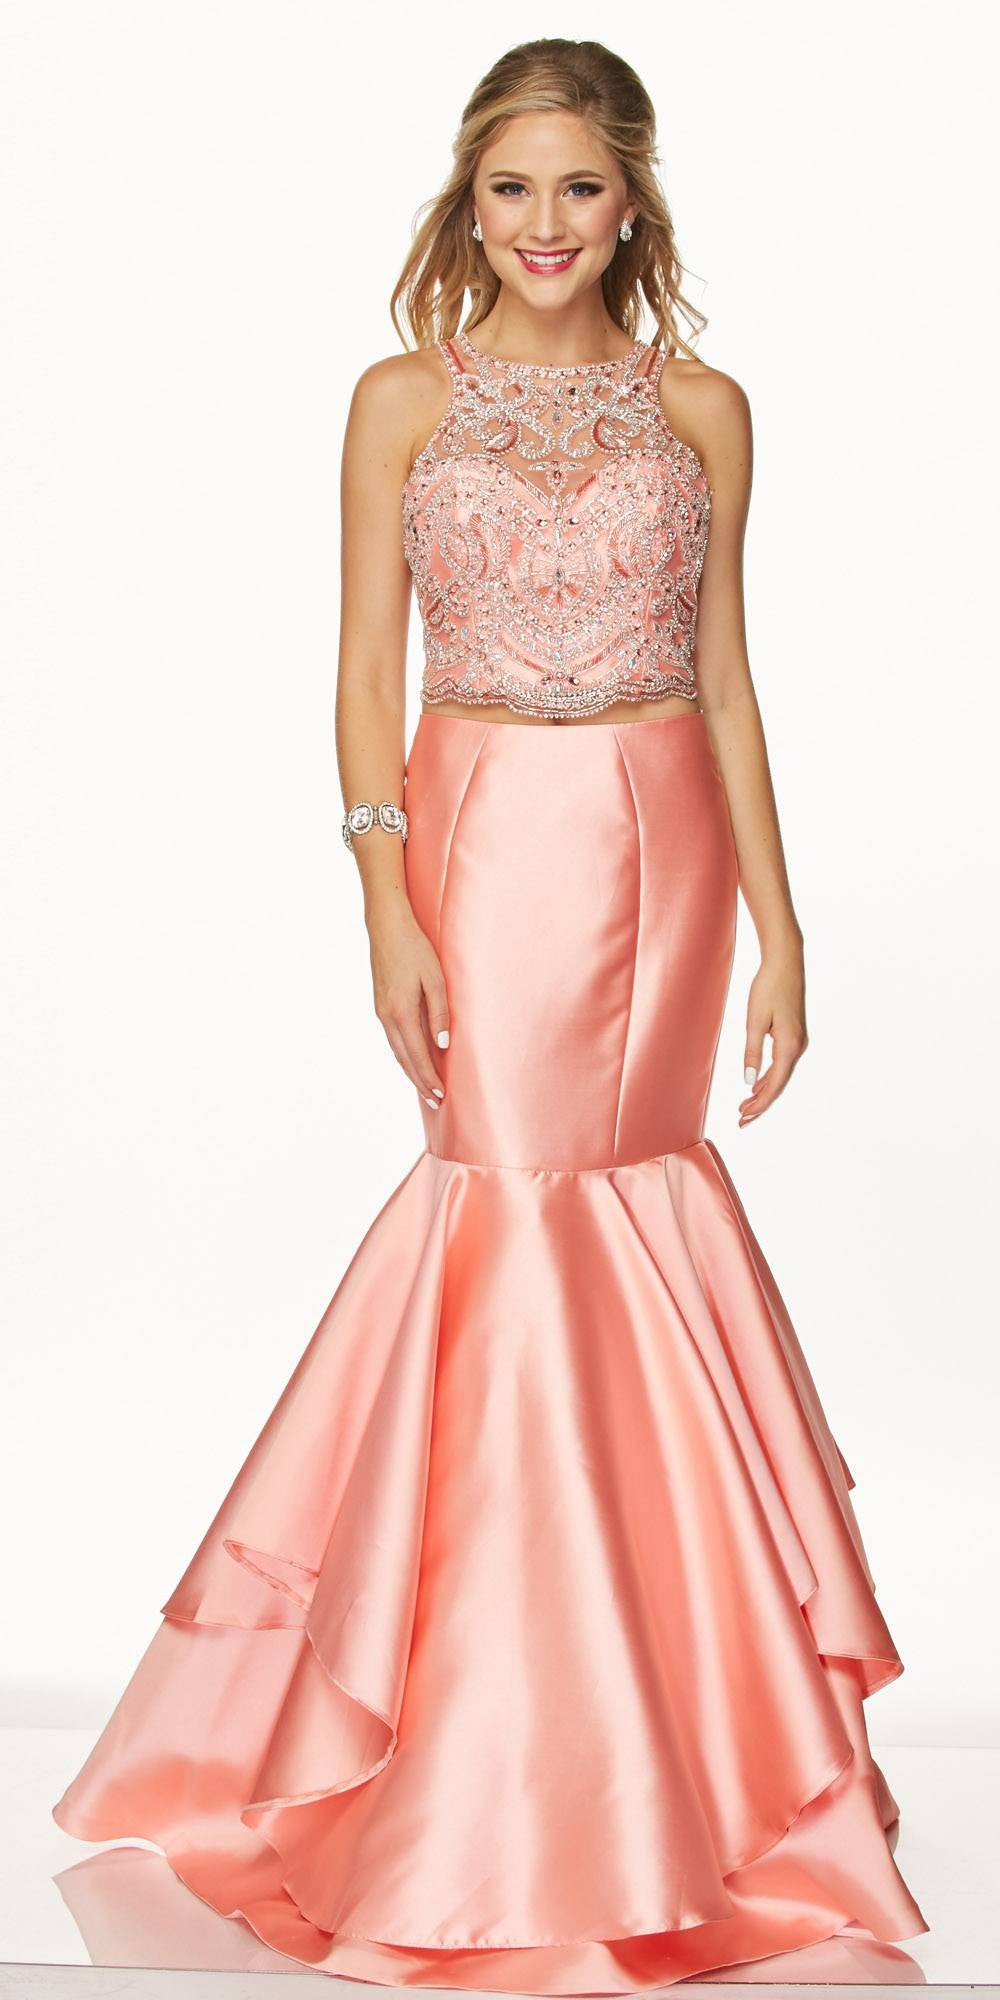 4cc099d76cb72 ... Juliet 631 Jewel Embellished Mermaid Style Two-Piece Prom Dress Coral  ...